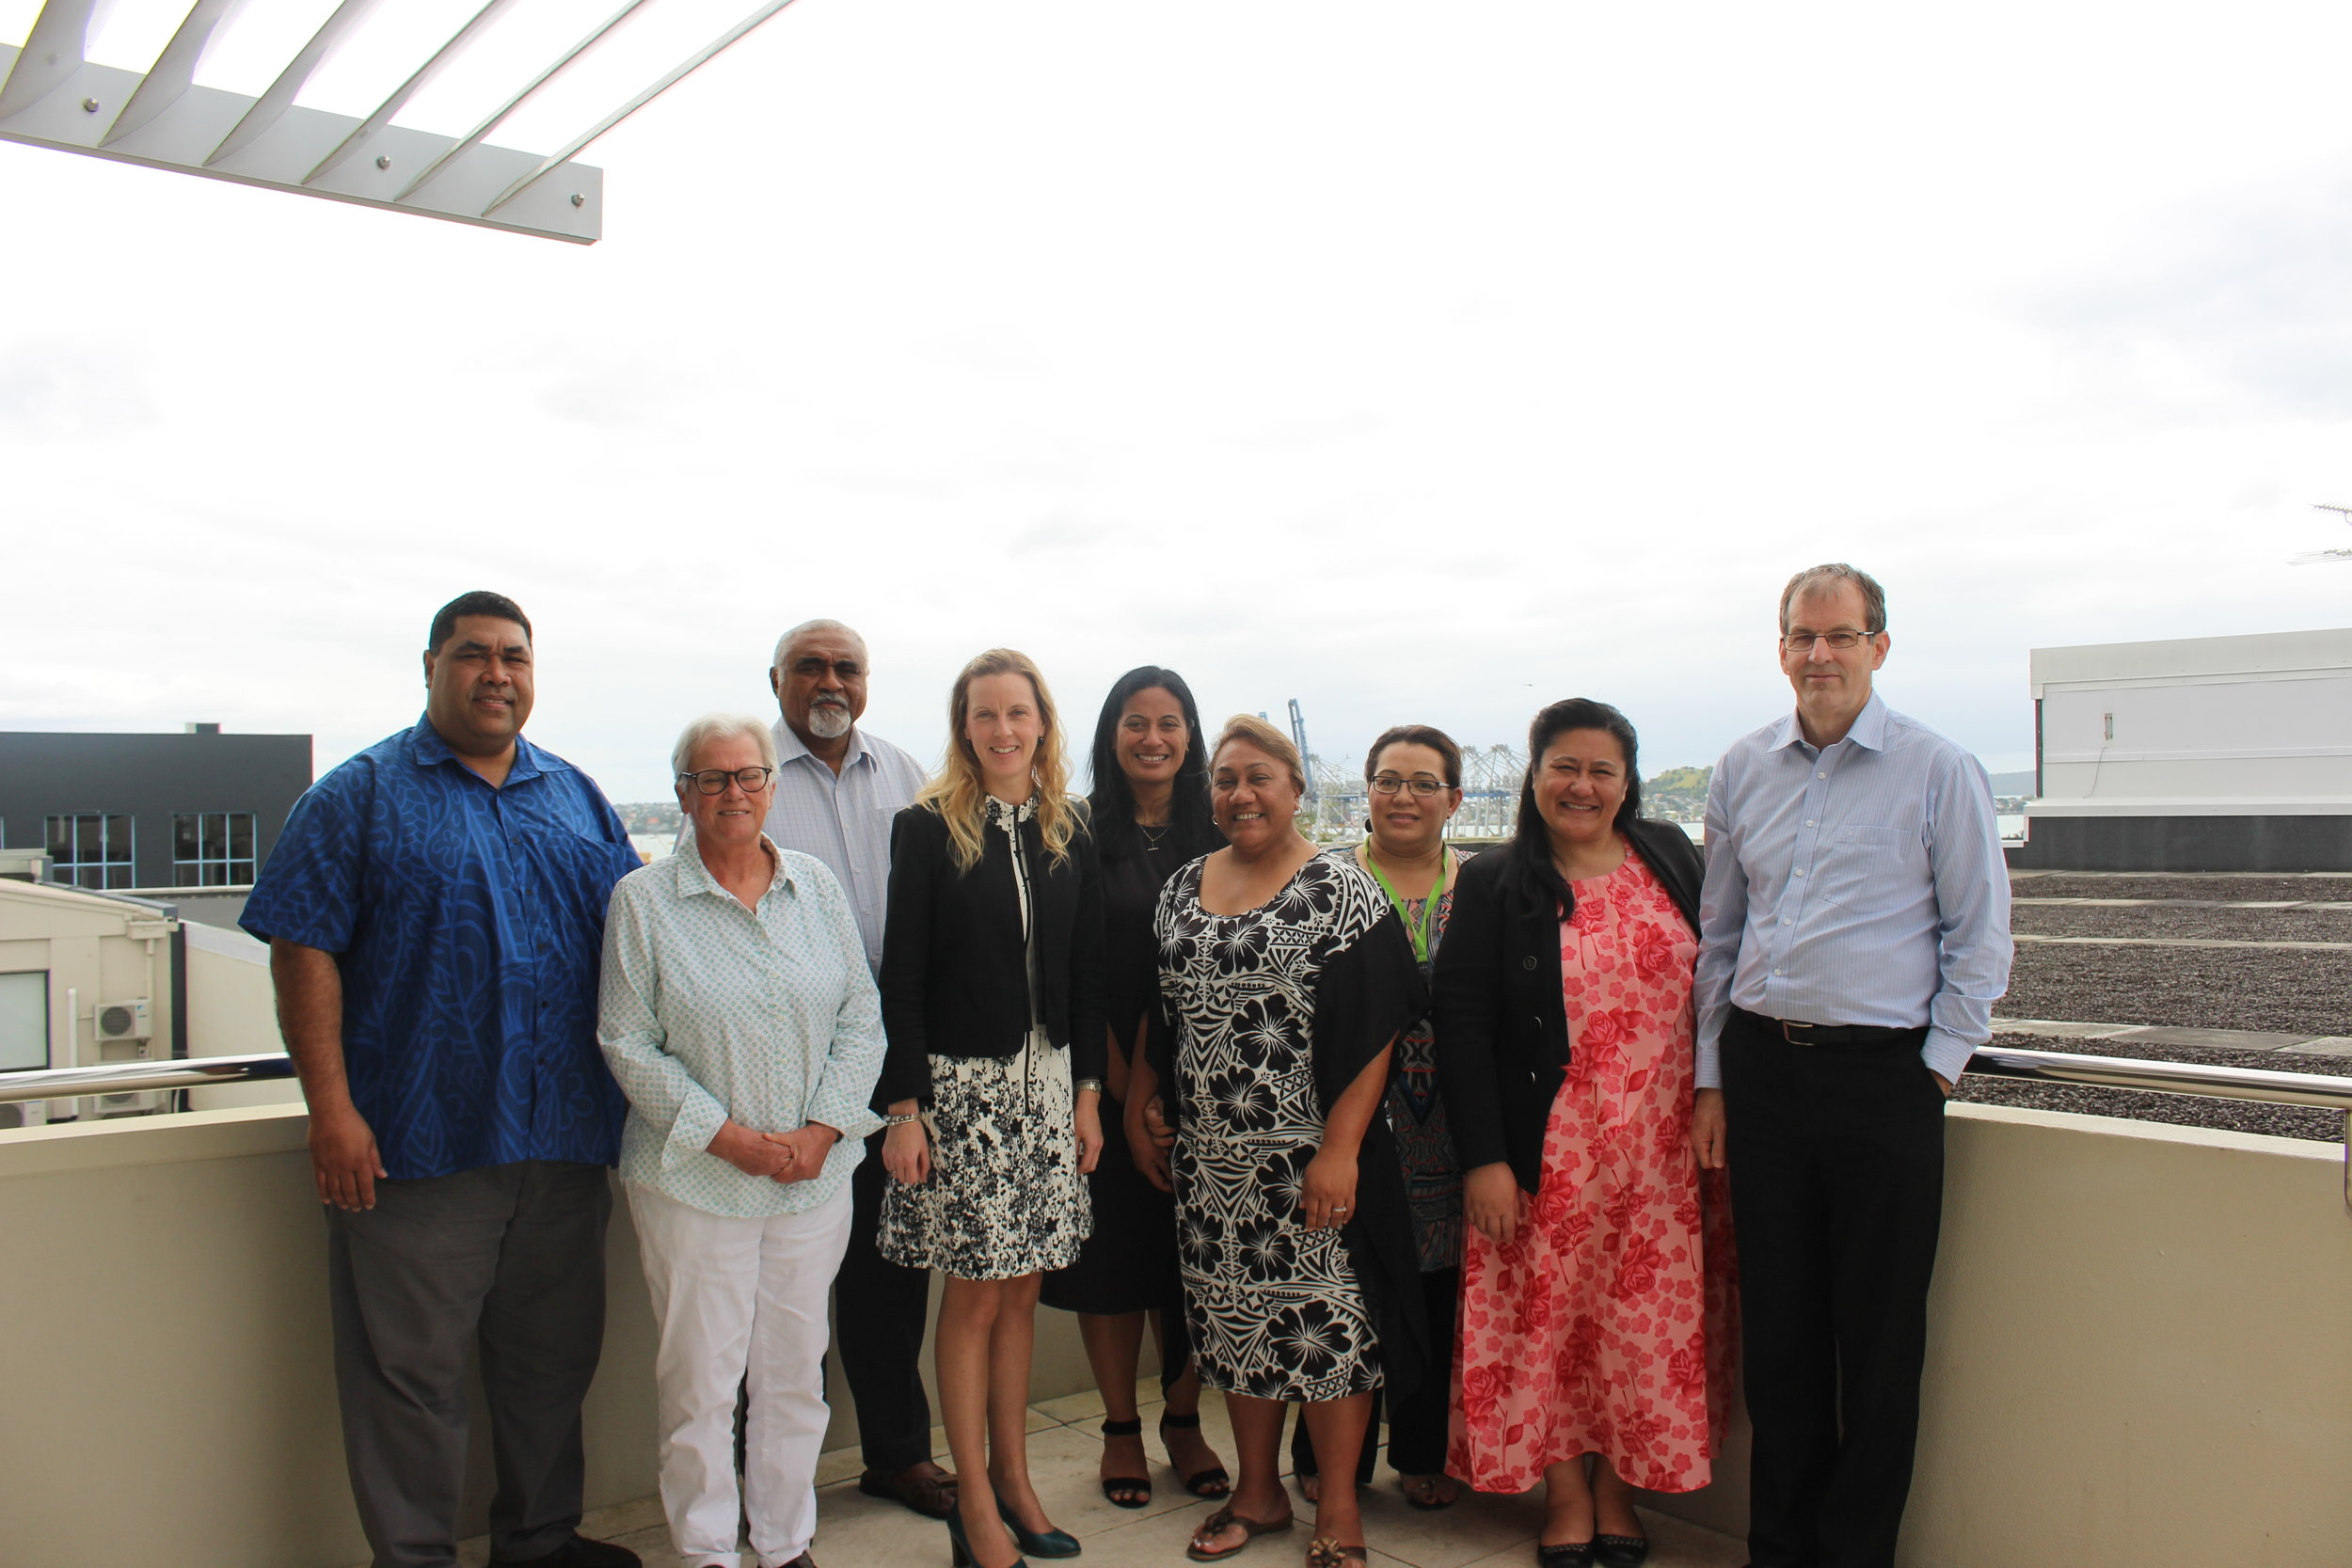 The team on the balcony of the PASAI Secretariat office in Parnell, Auckland.